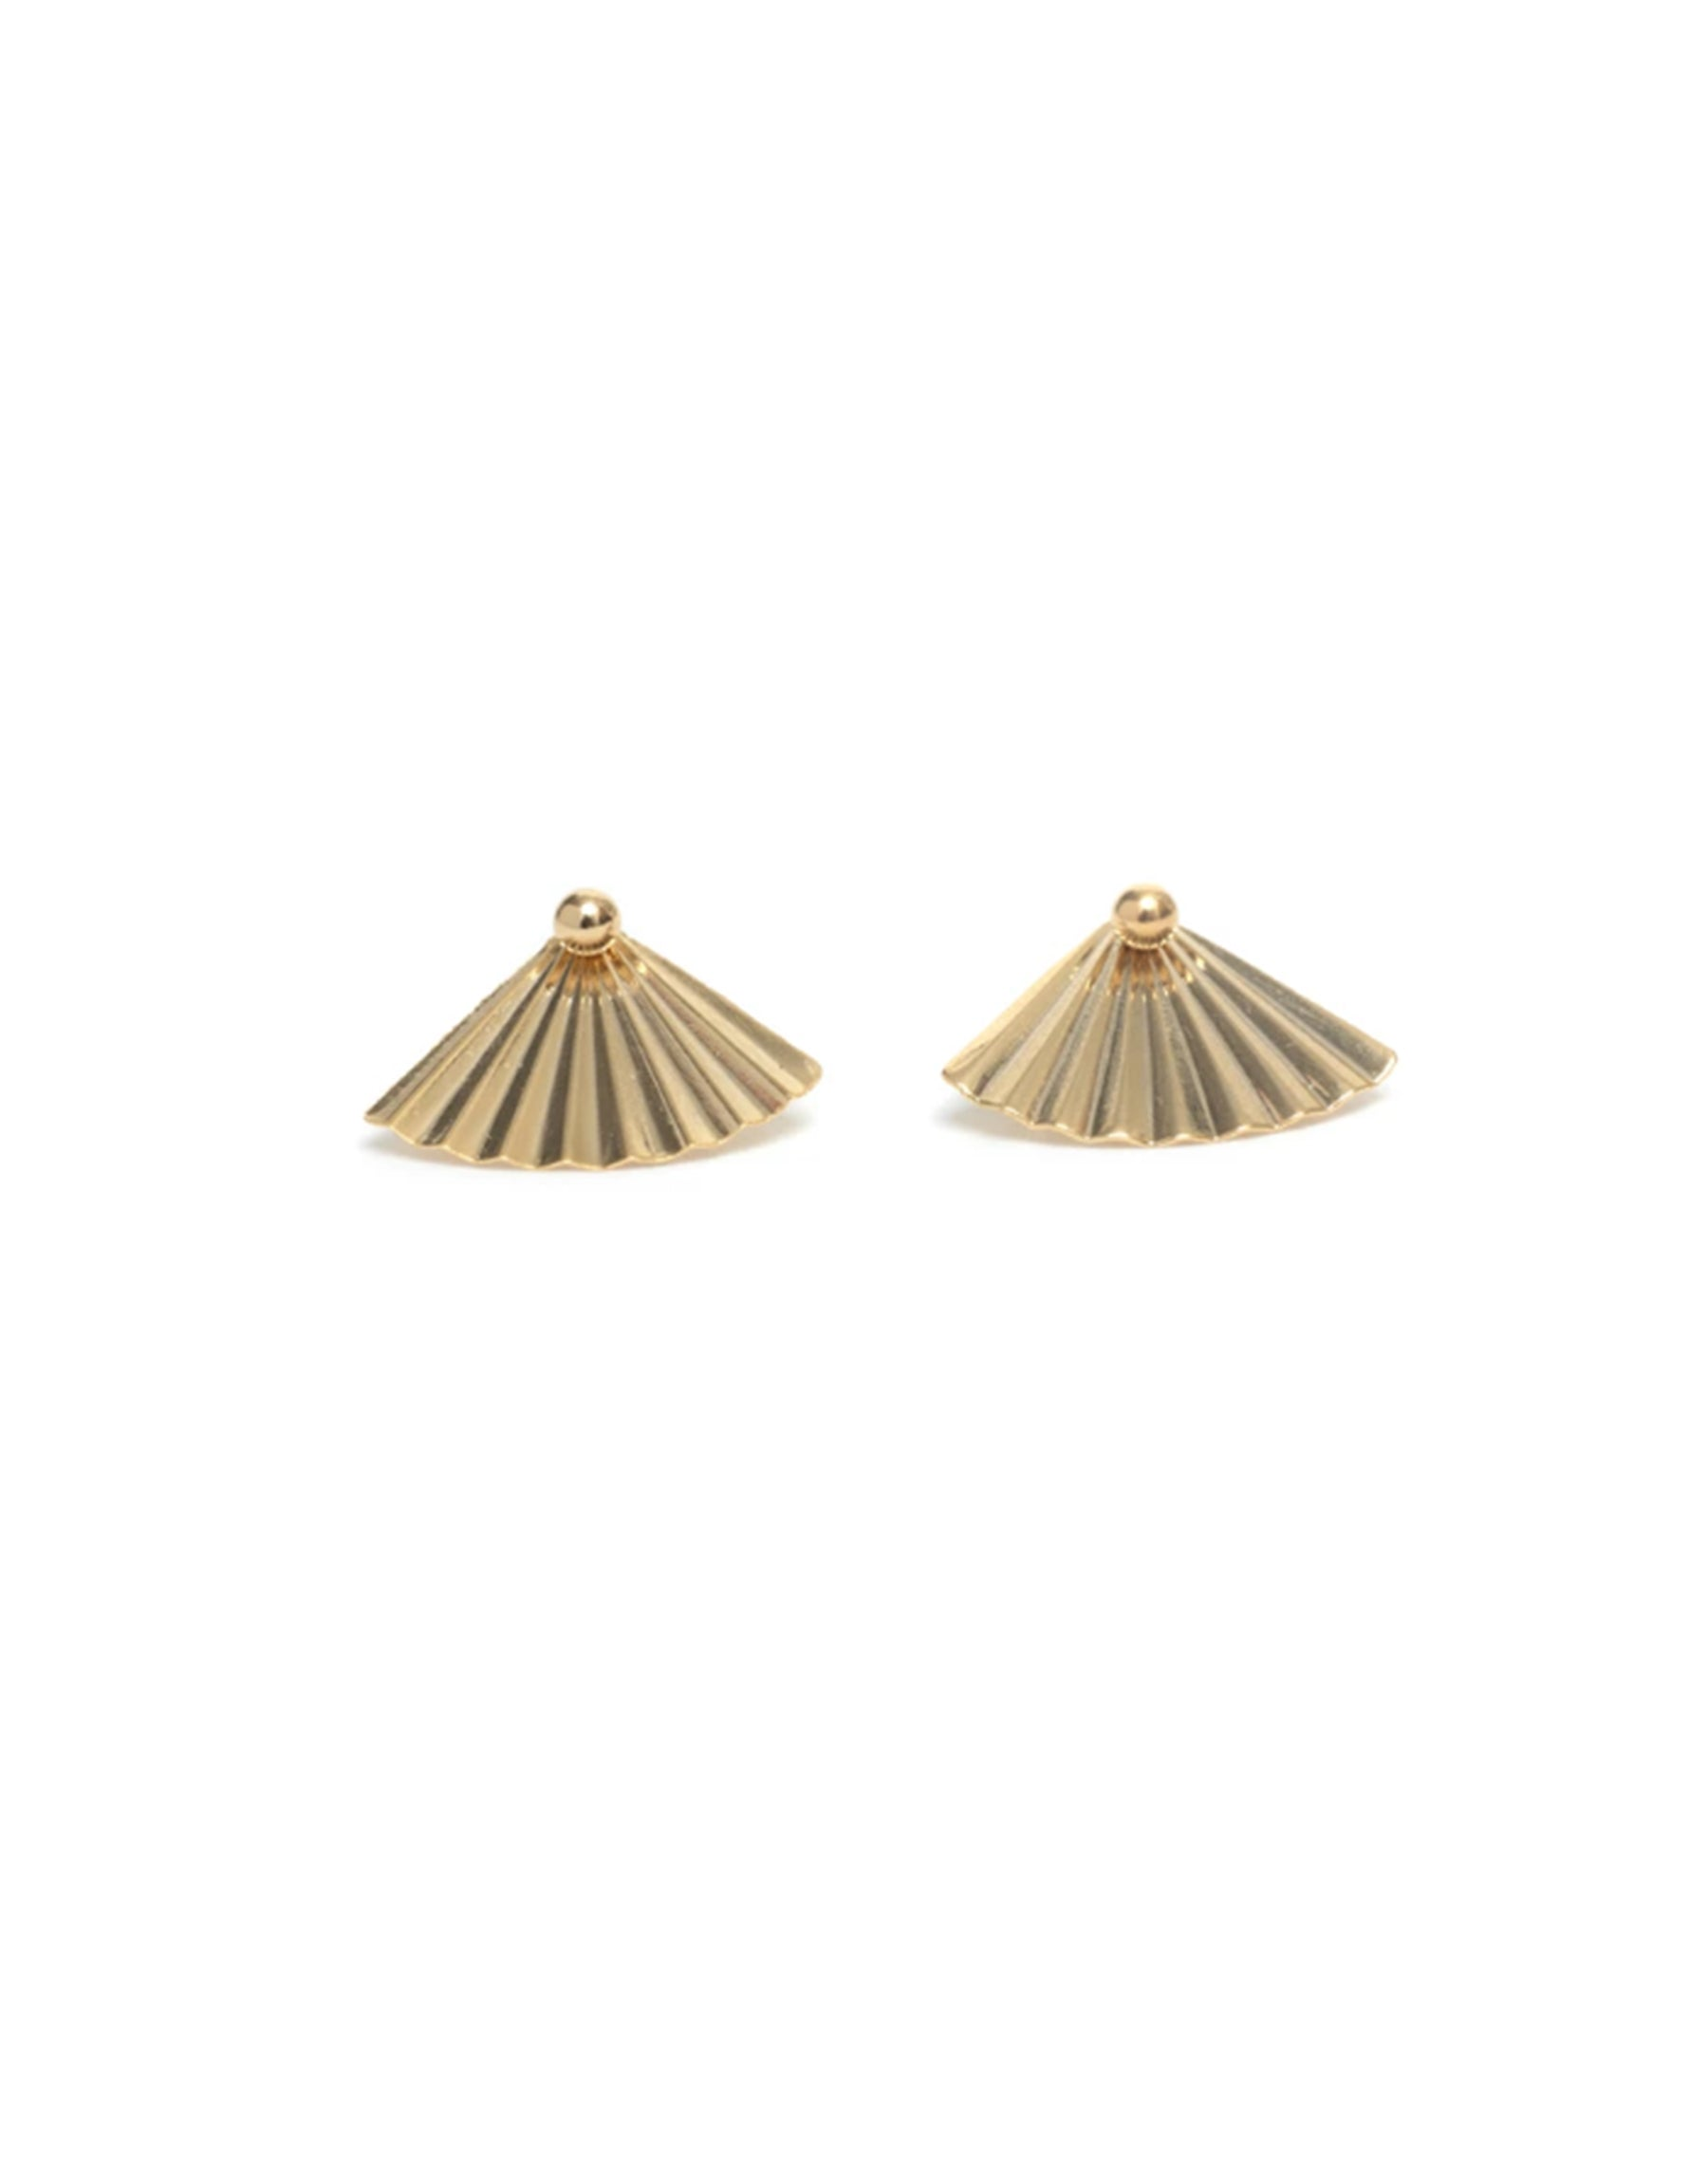 Image of the Fan studs in gold by Lisbeth.